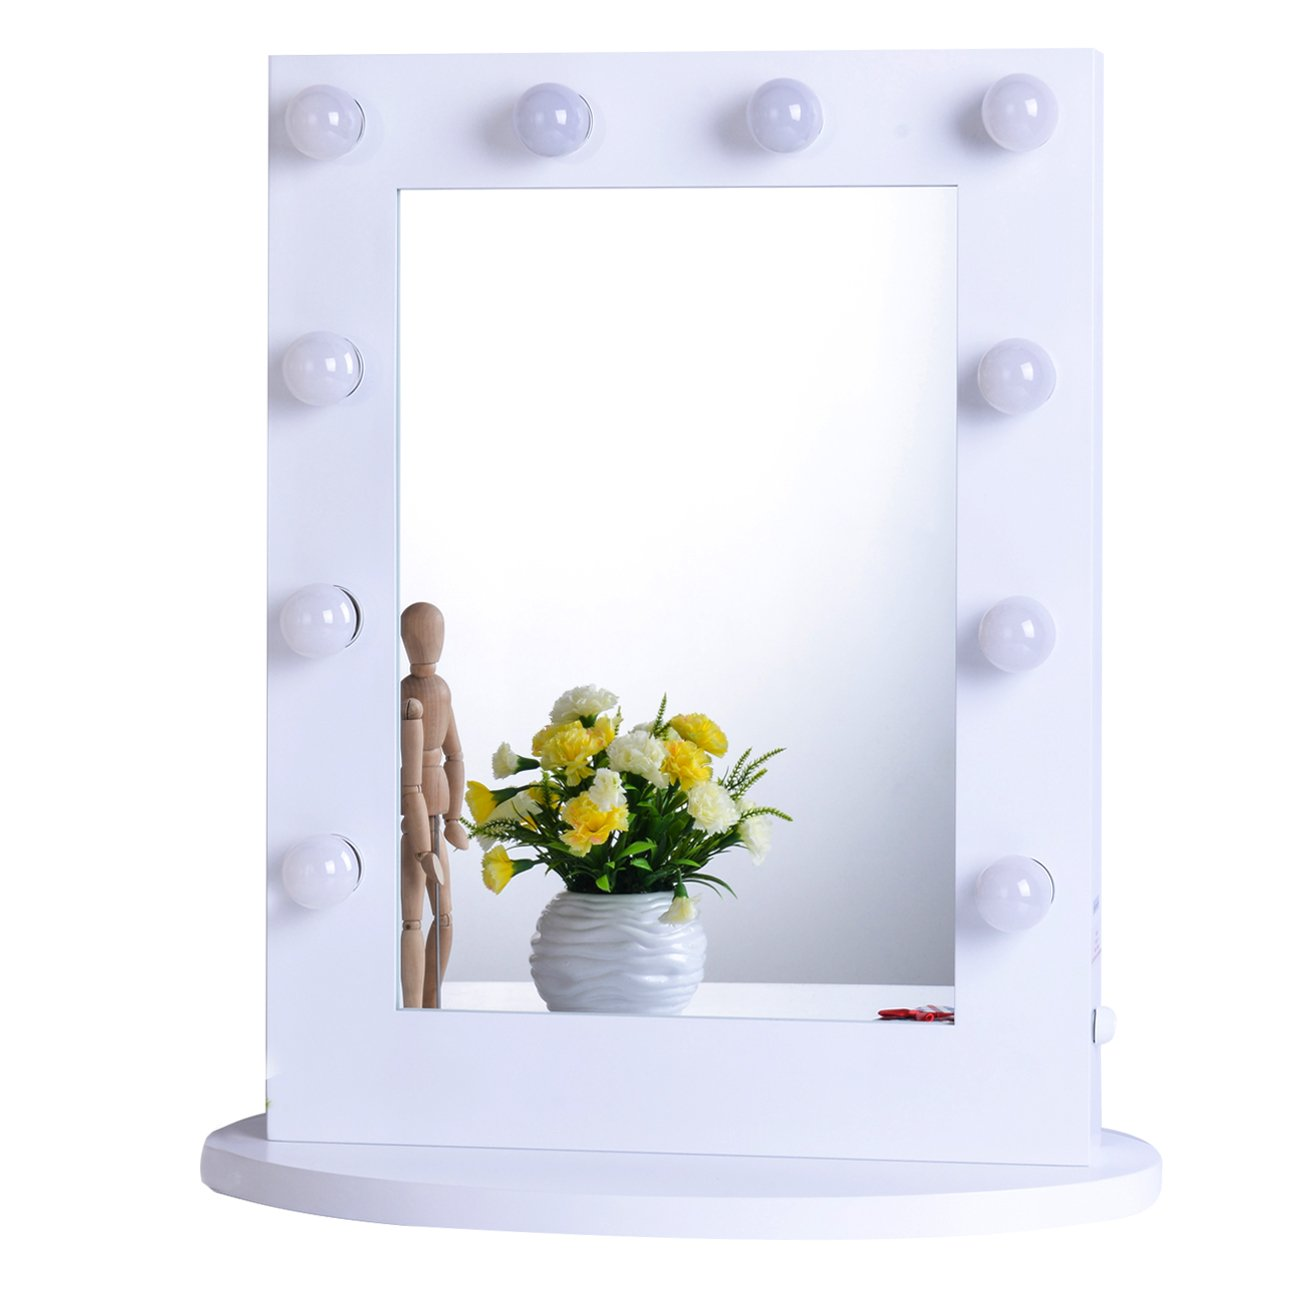 Chende White Hollywood Makeup Vanity Mirror